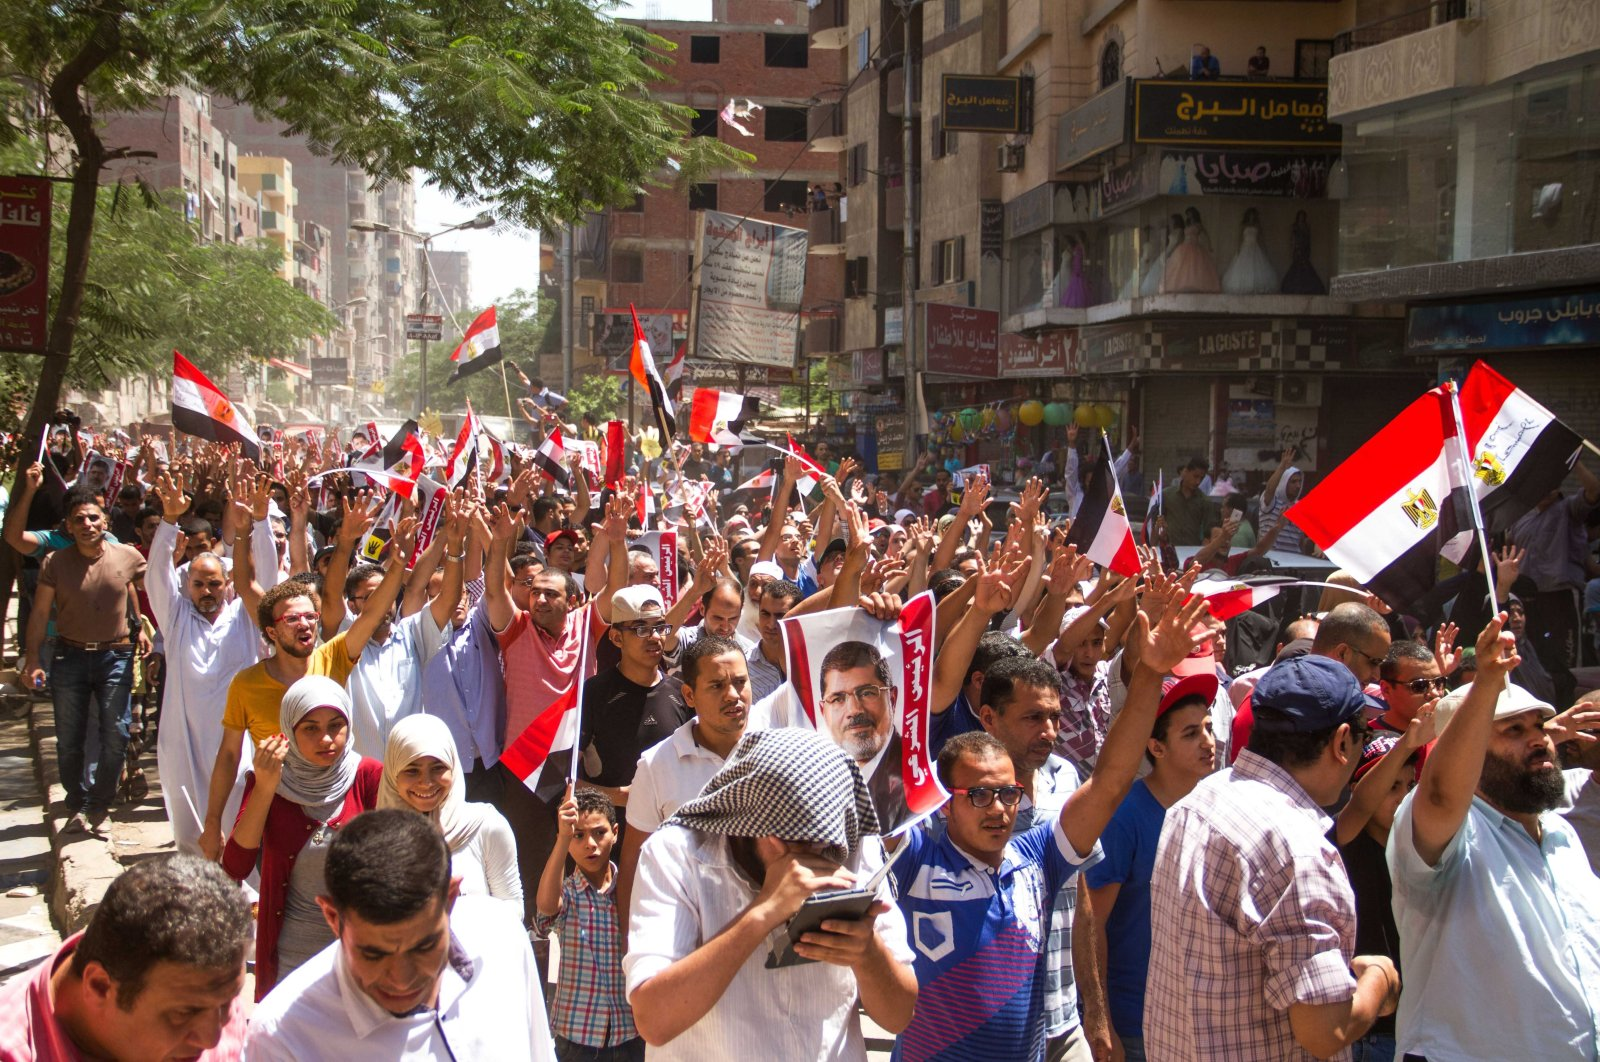 Members of the Muslim Brotherhood hold up pictures of their ousted President Mohammed Morsi during protests, Egypt, Aug. 14, 2015. (AP Photo)